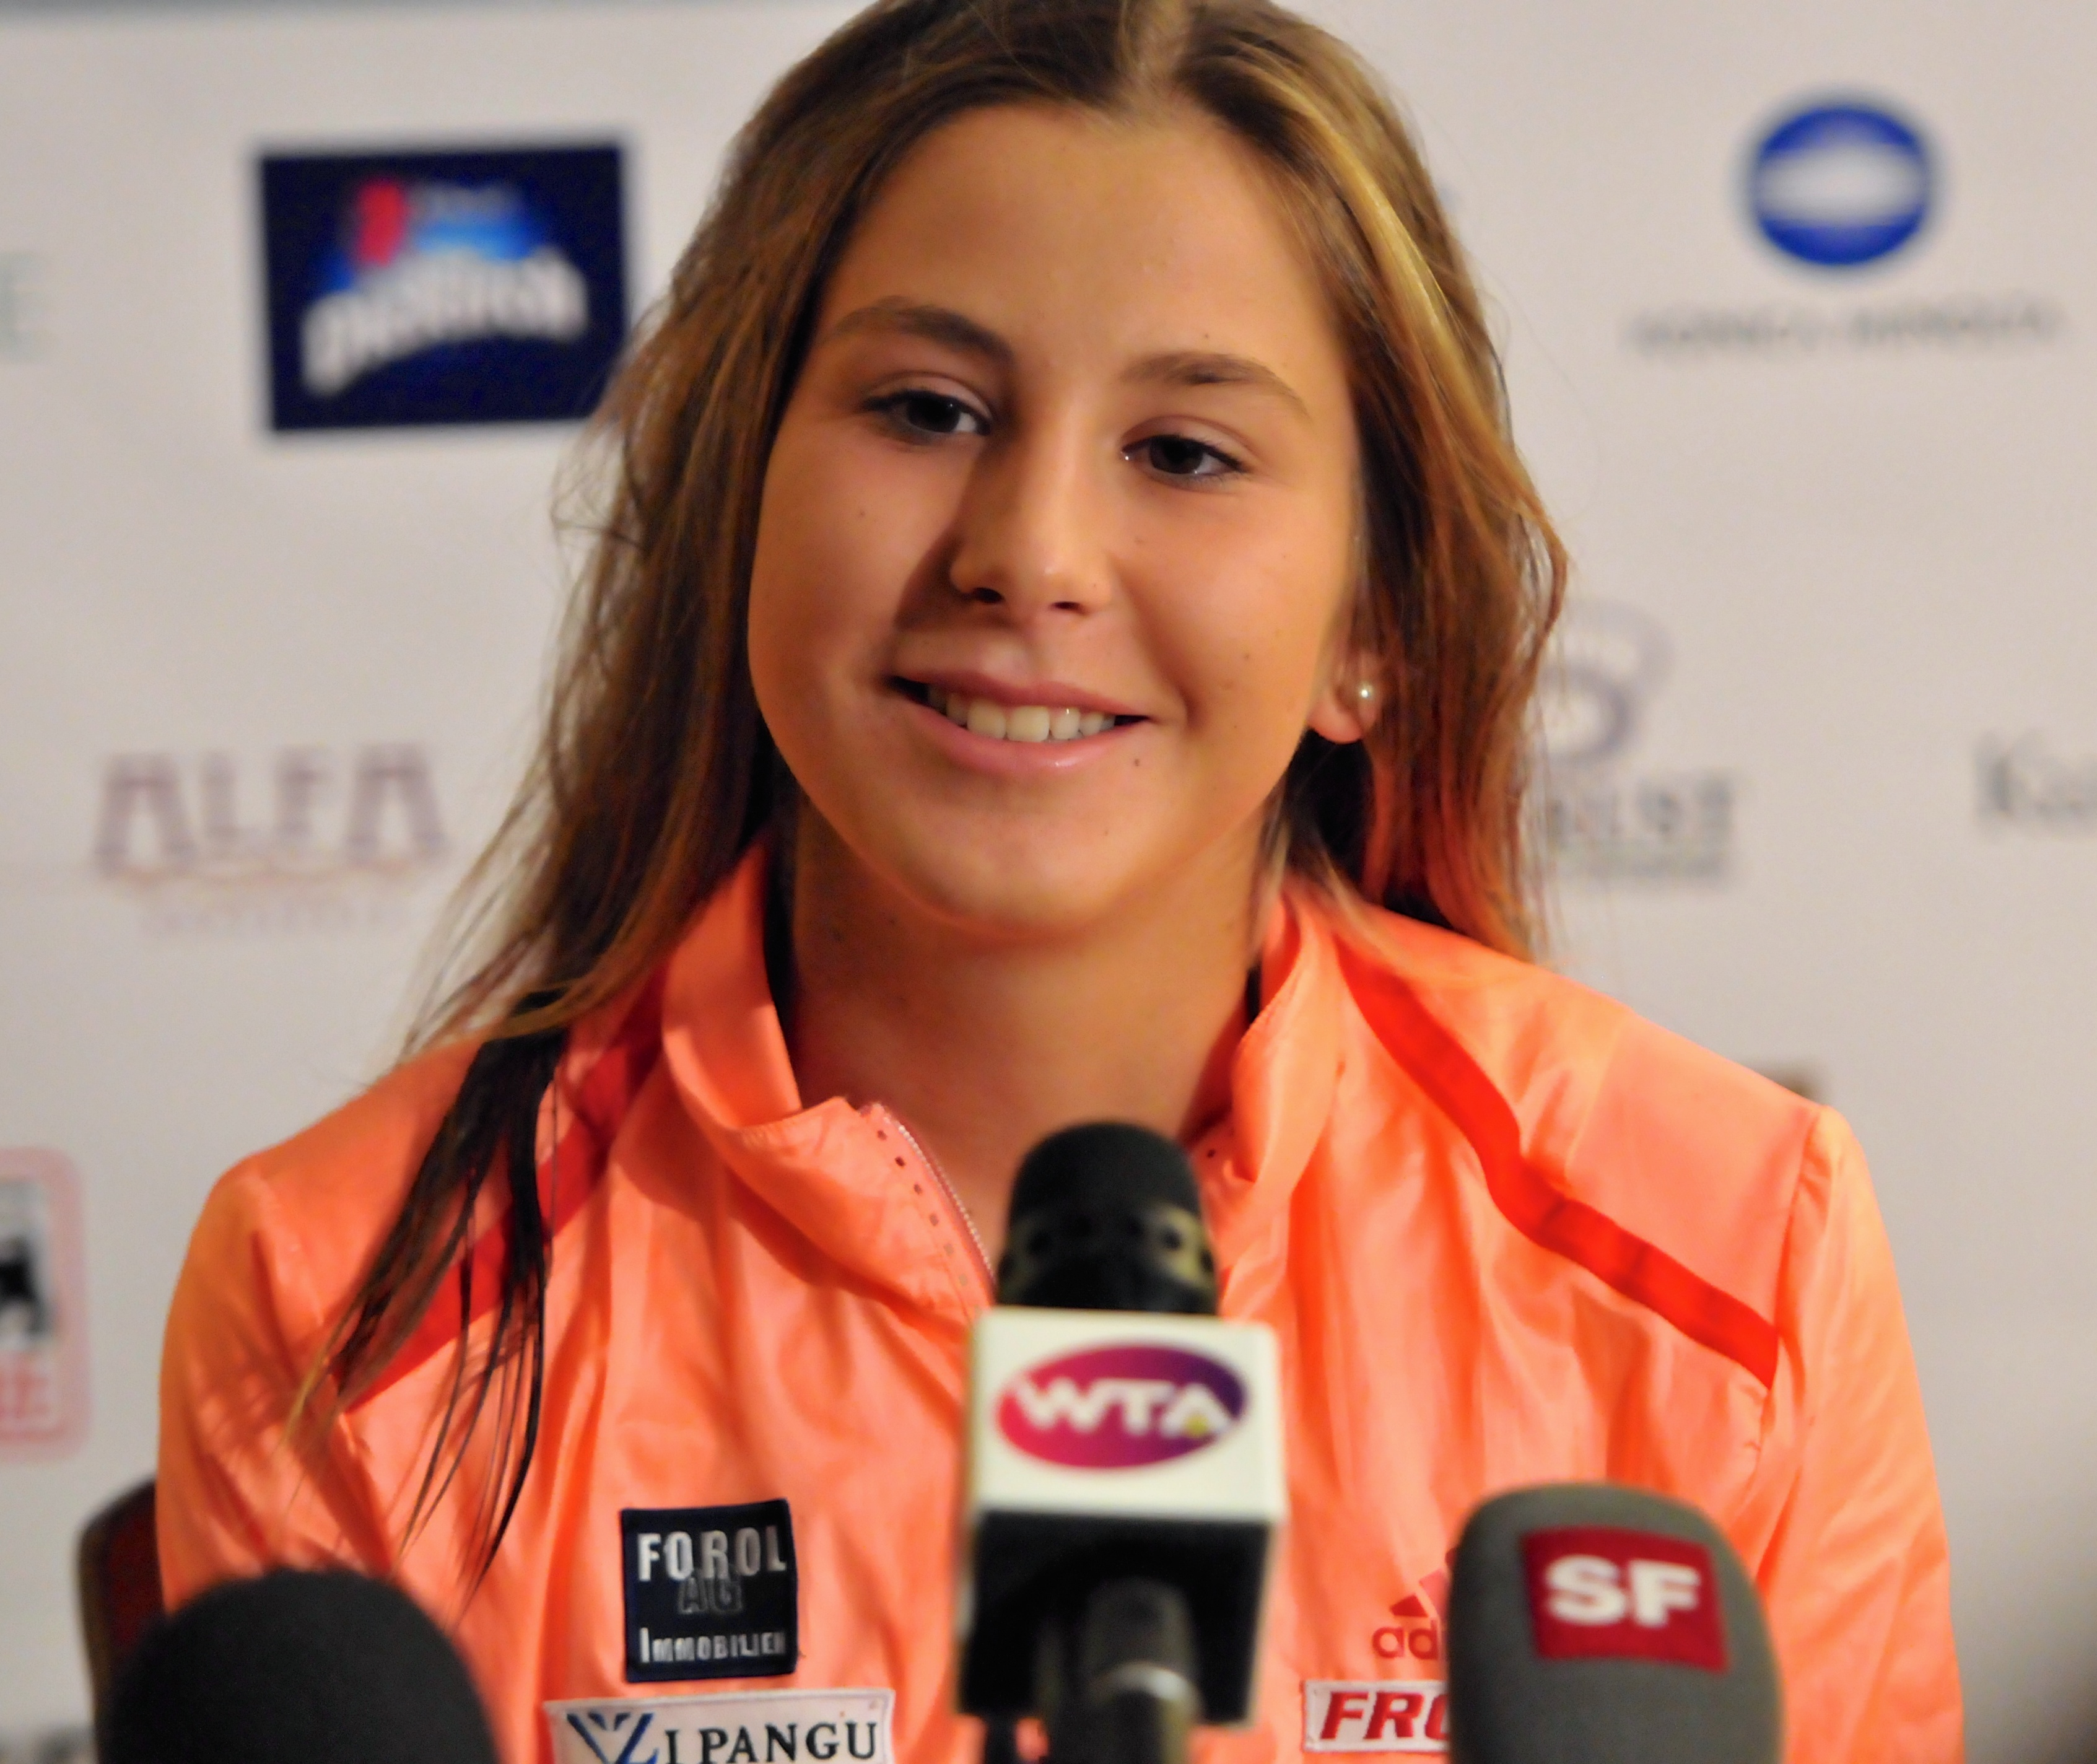 download belinda bencic press conference with smile mobile background images free hd